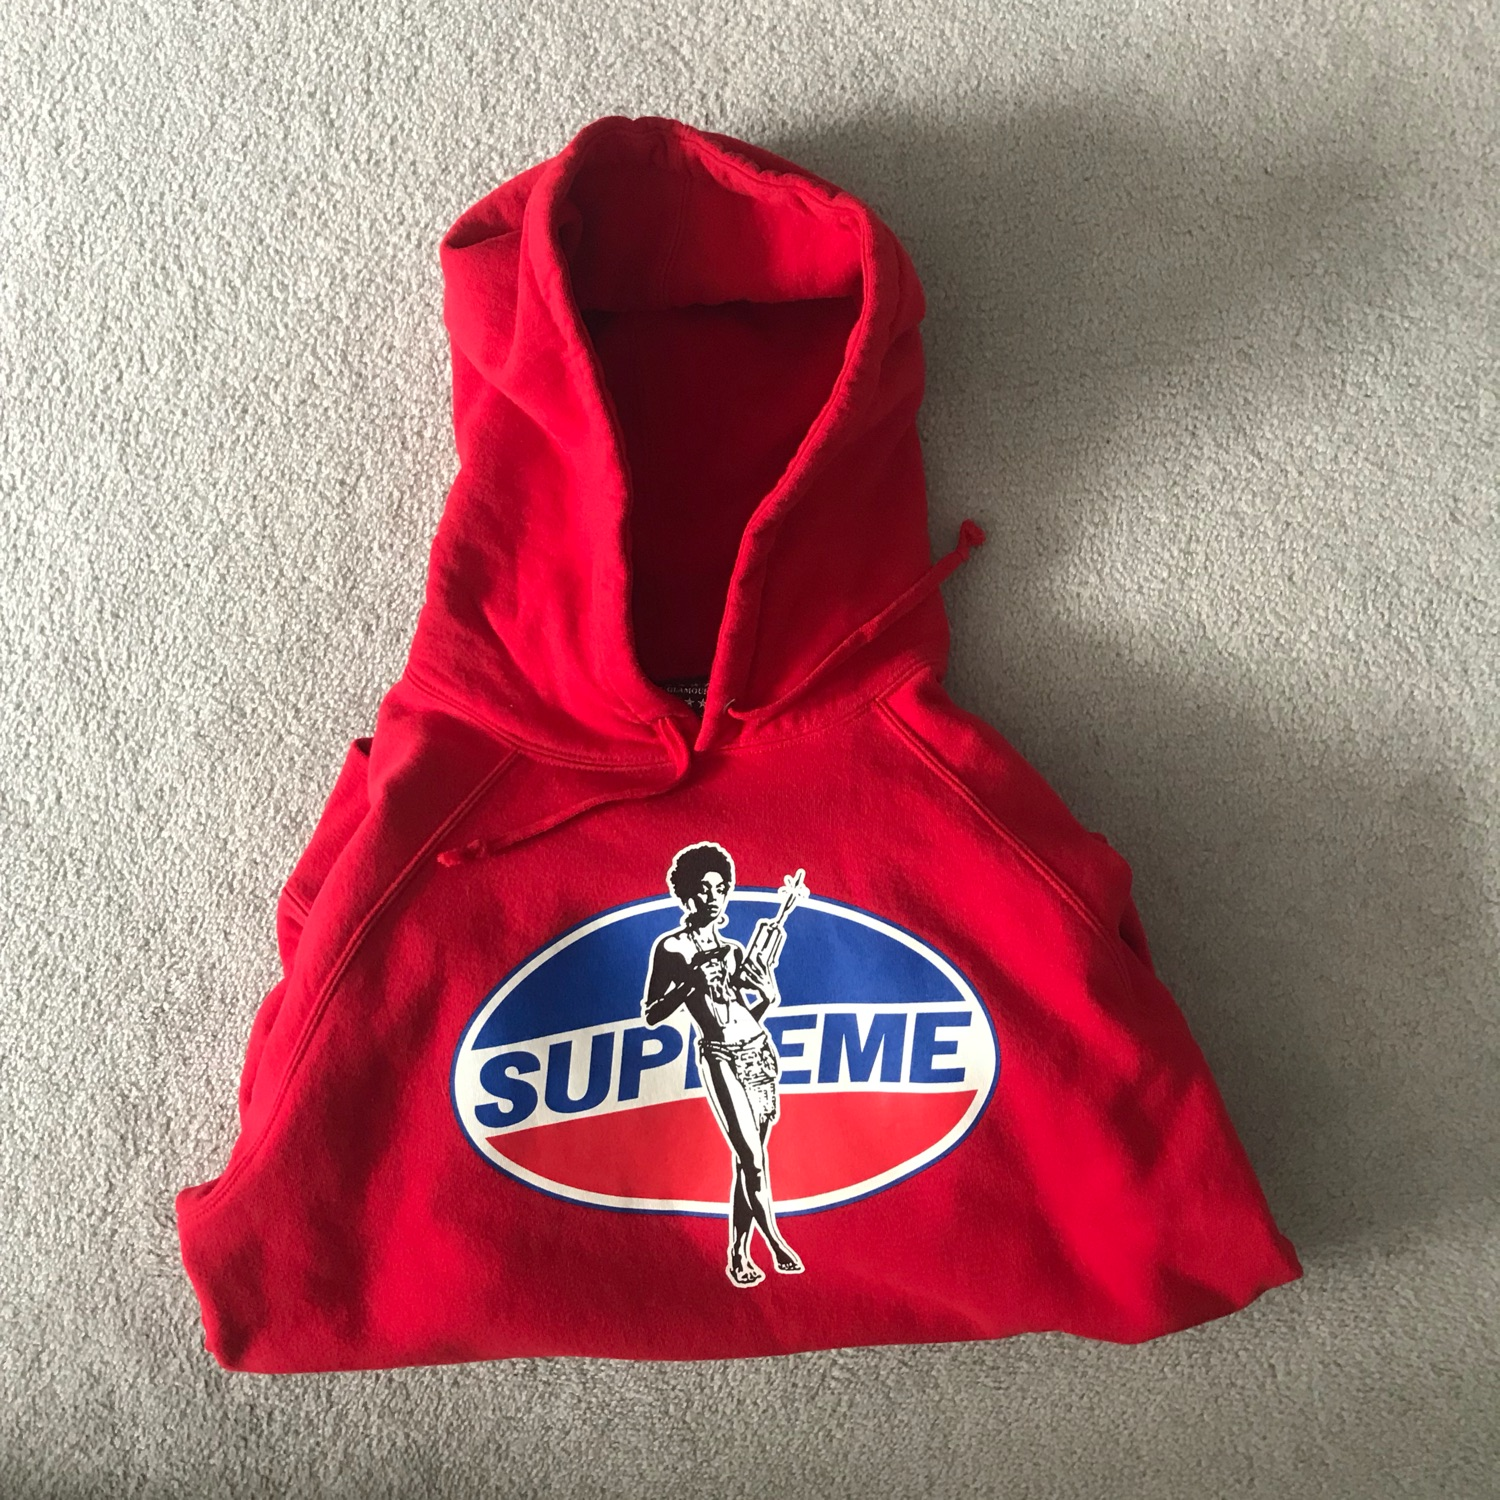 Supreme X Hysteric Glamour Hoodie